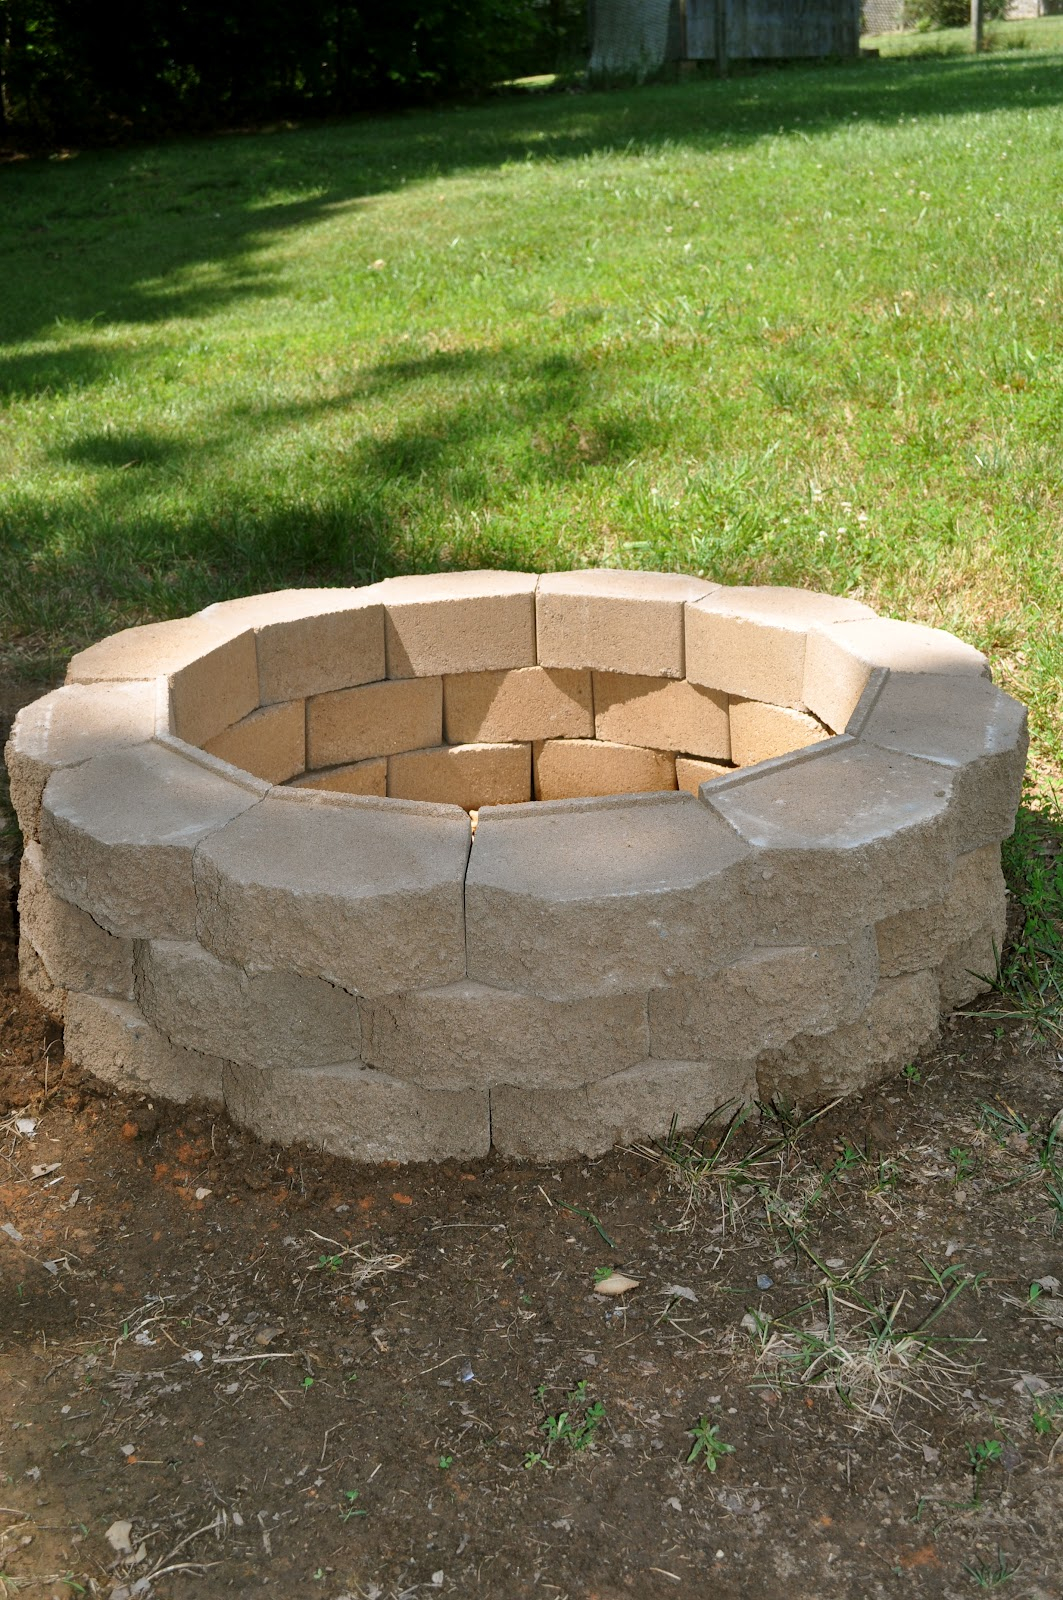 Diy Outdoor Brick Fire Pit Fireplace Design Ideas in dimensions 1063 X 1600